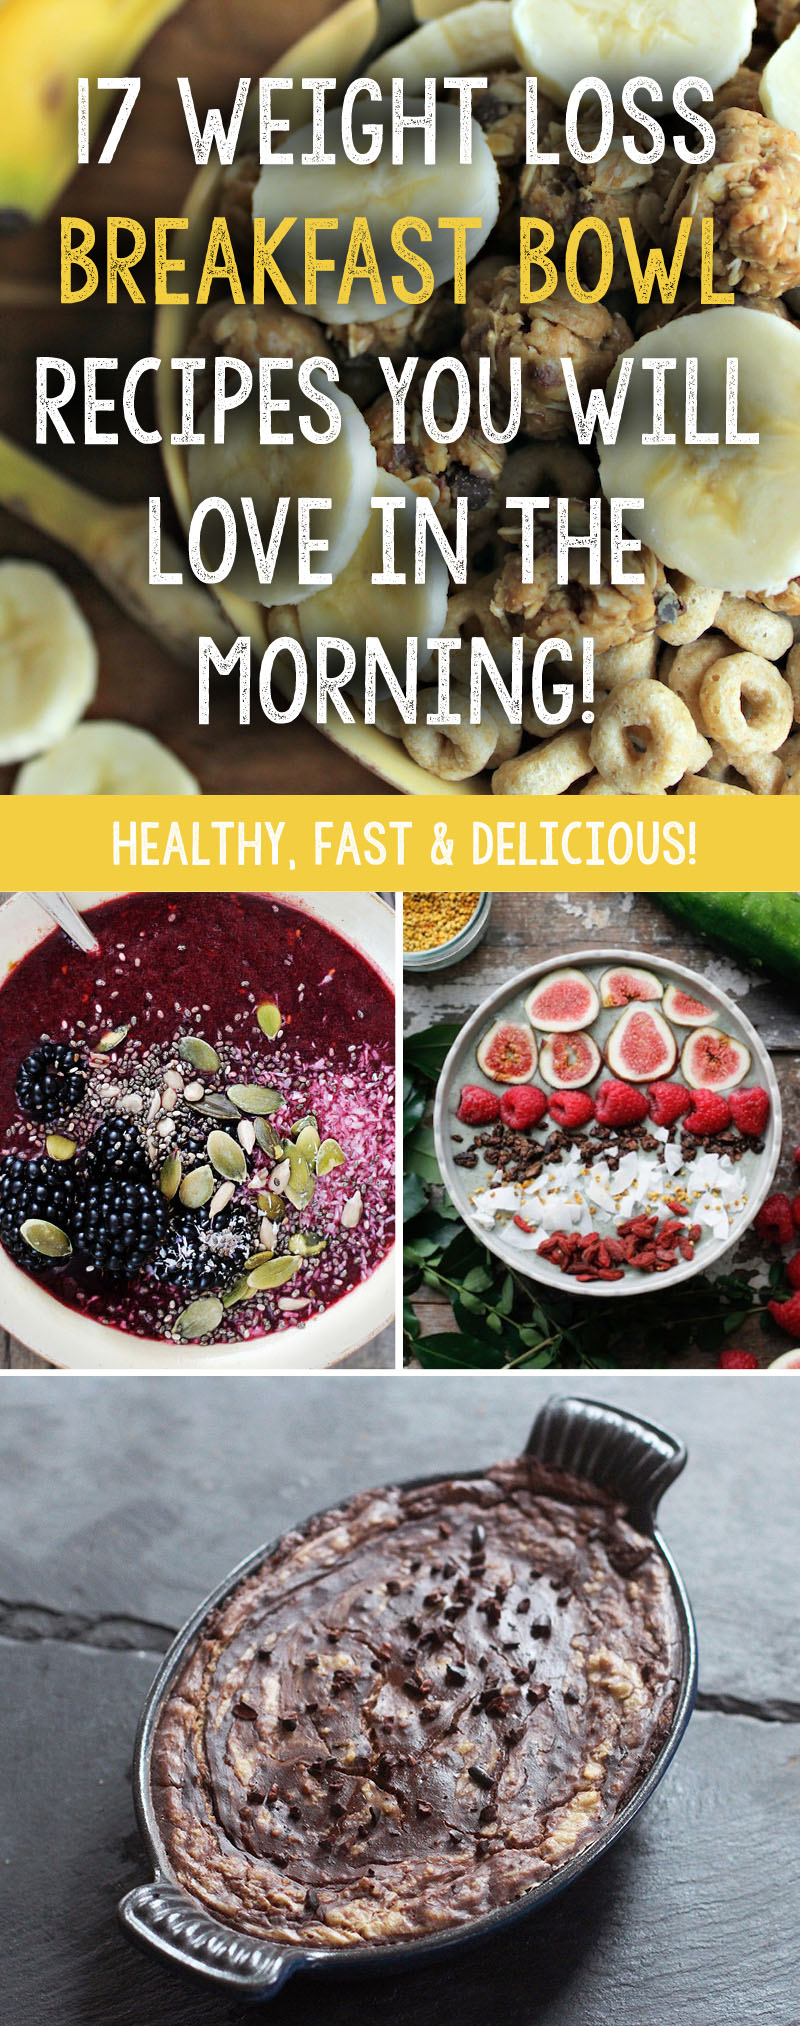 Breakfast-Bowl-Recipes-Weight-Loss